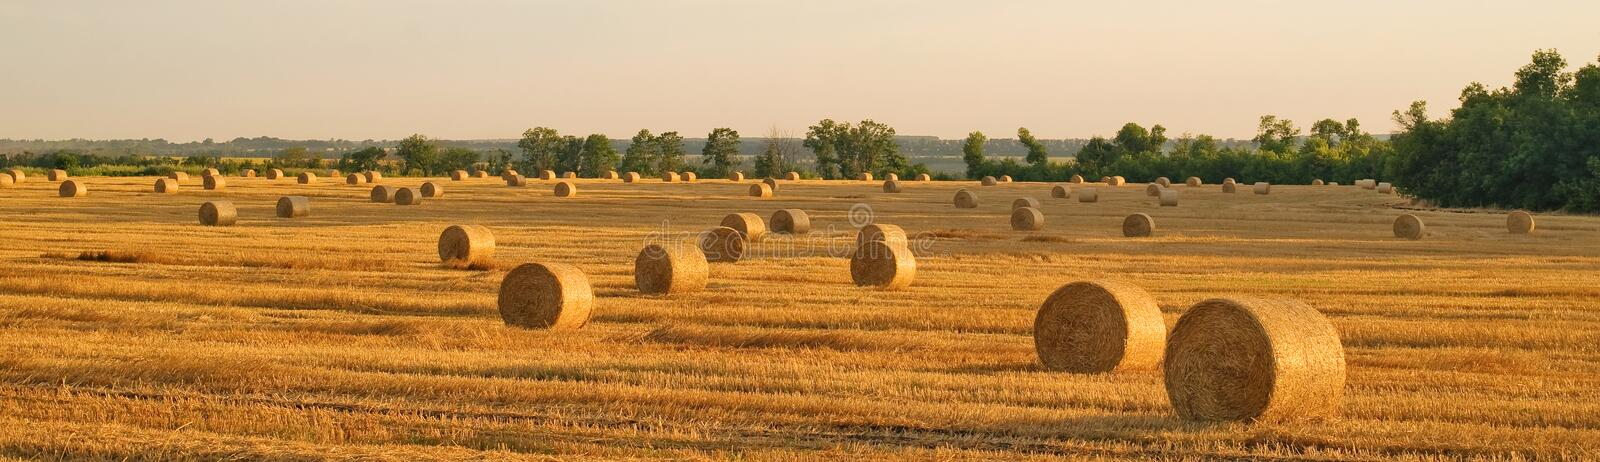 Hay-roll in golden field landscape stock photography